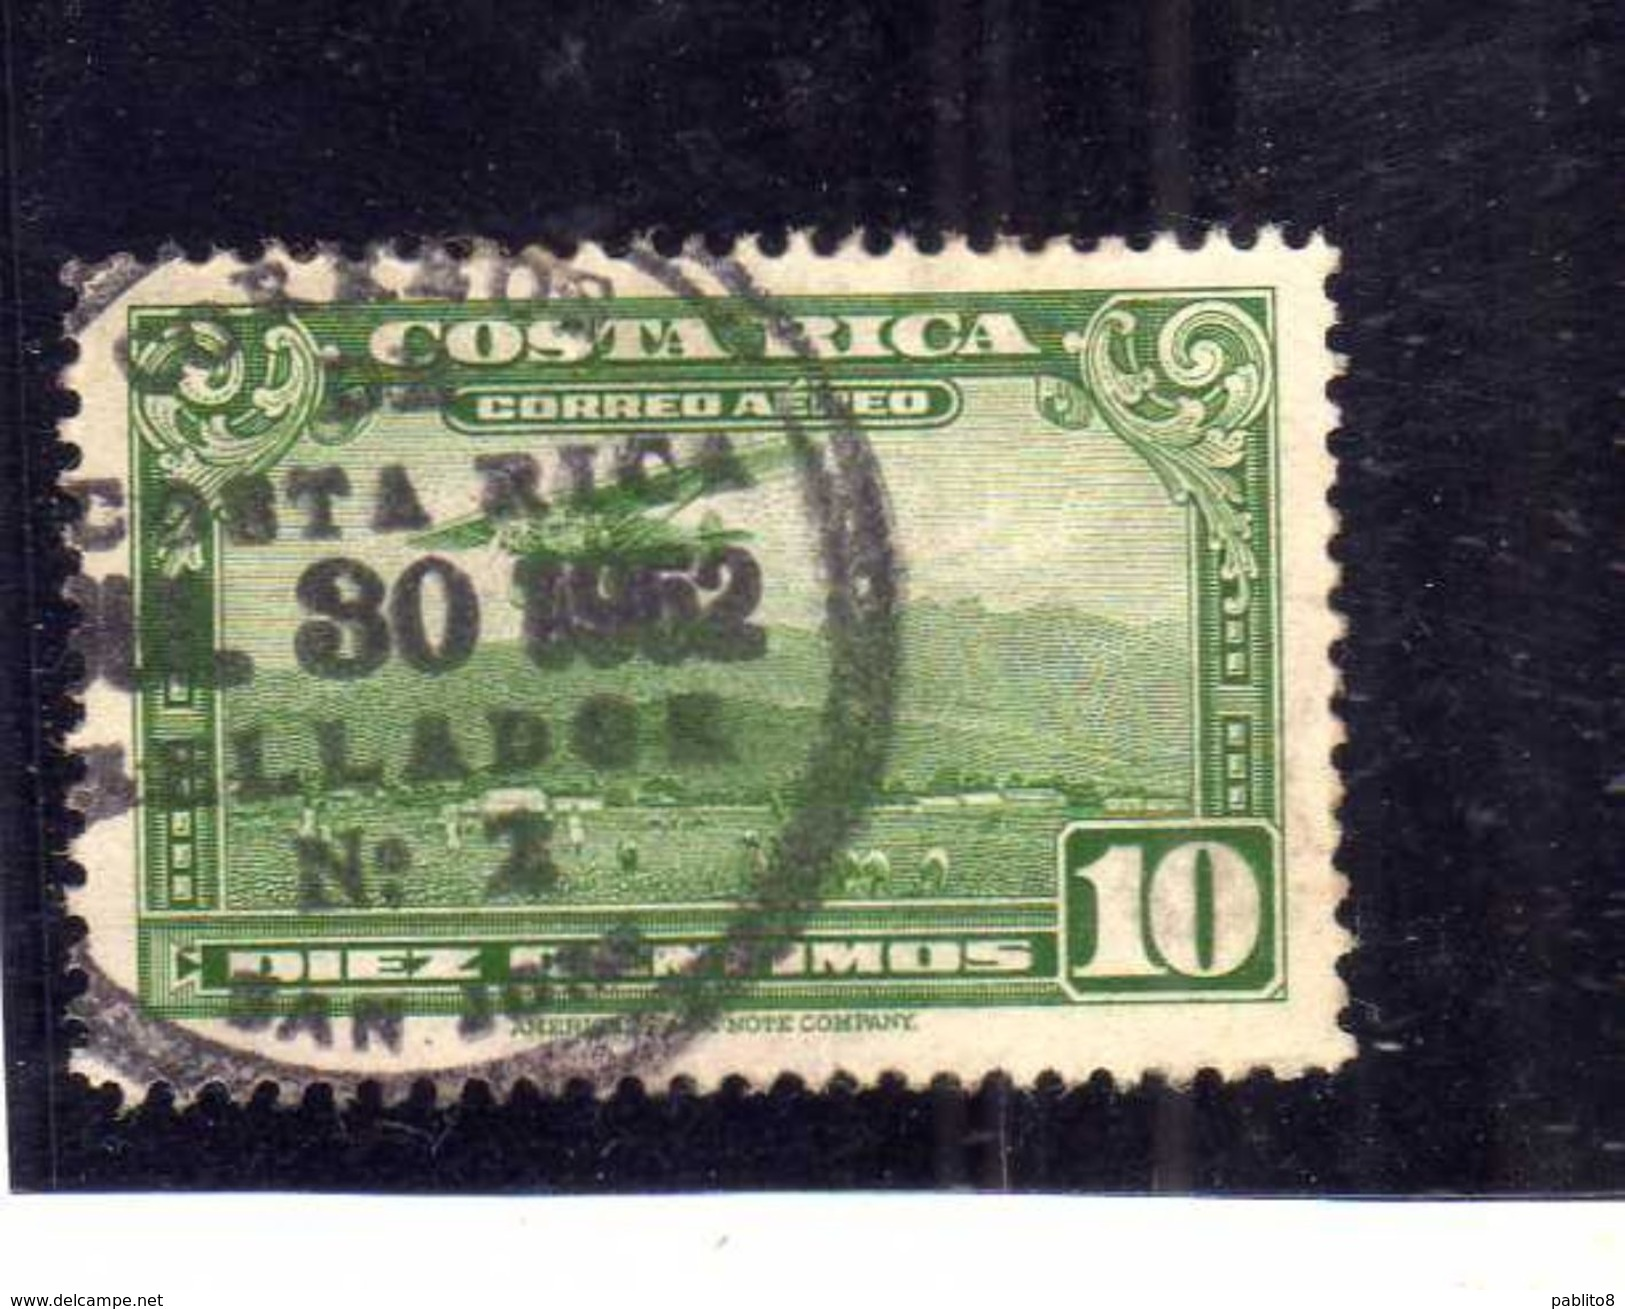 COSTA RICA 1952 1953 AIR MAIL POSTA AEREA AEREO MAIL PLANE ABOUT TO LAND CENT 10c USATO USED OBLITERE' - Costa Rica